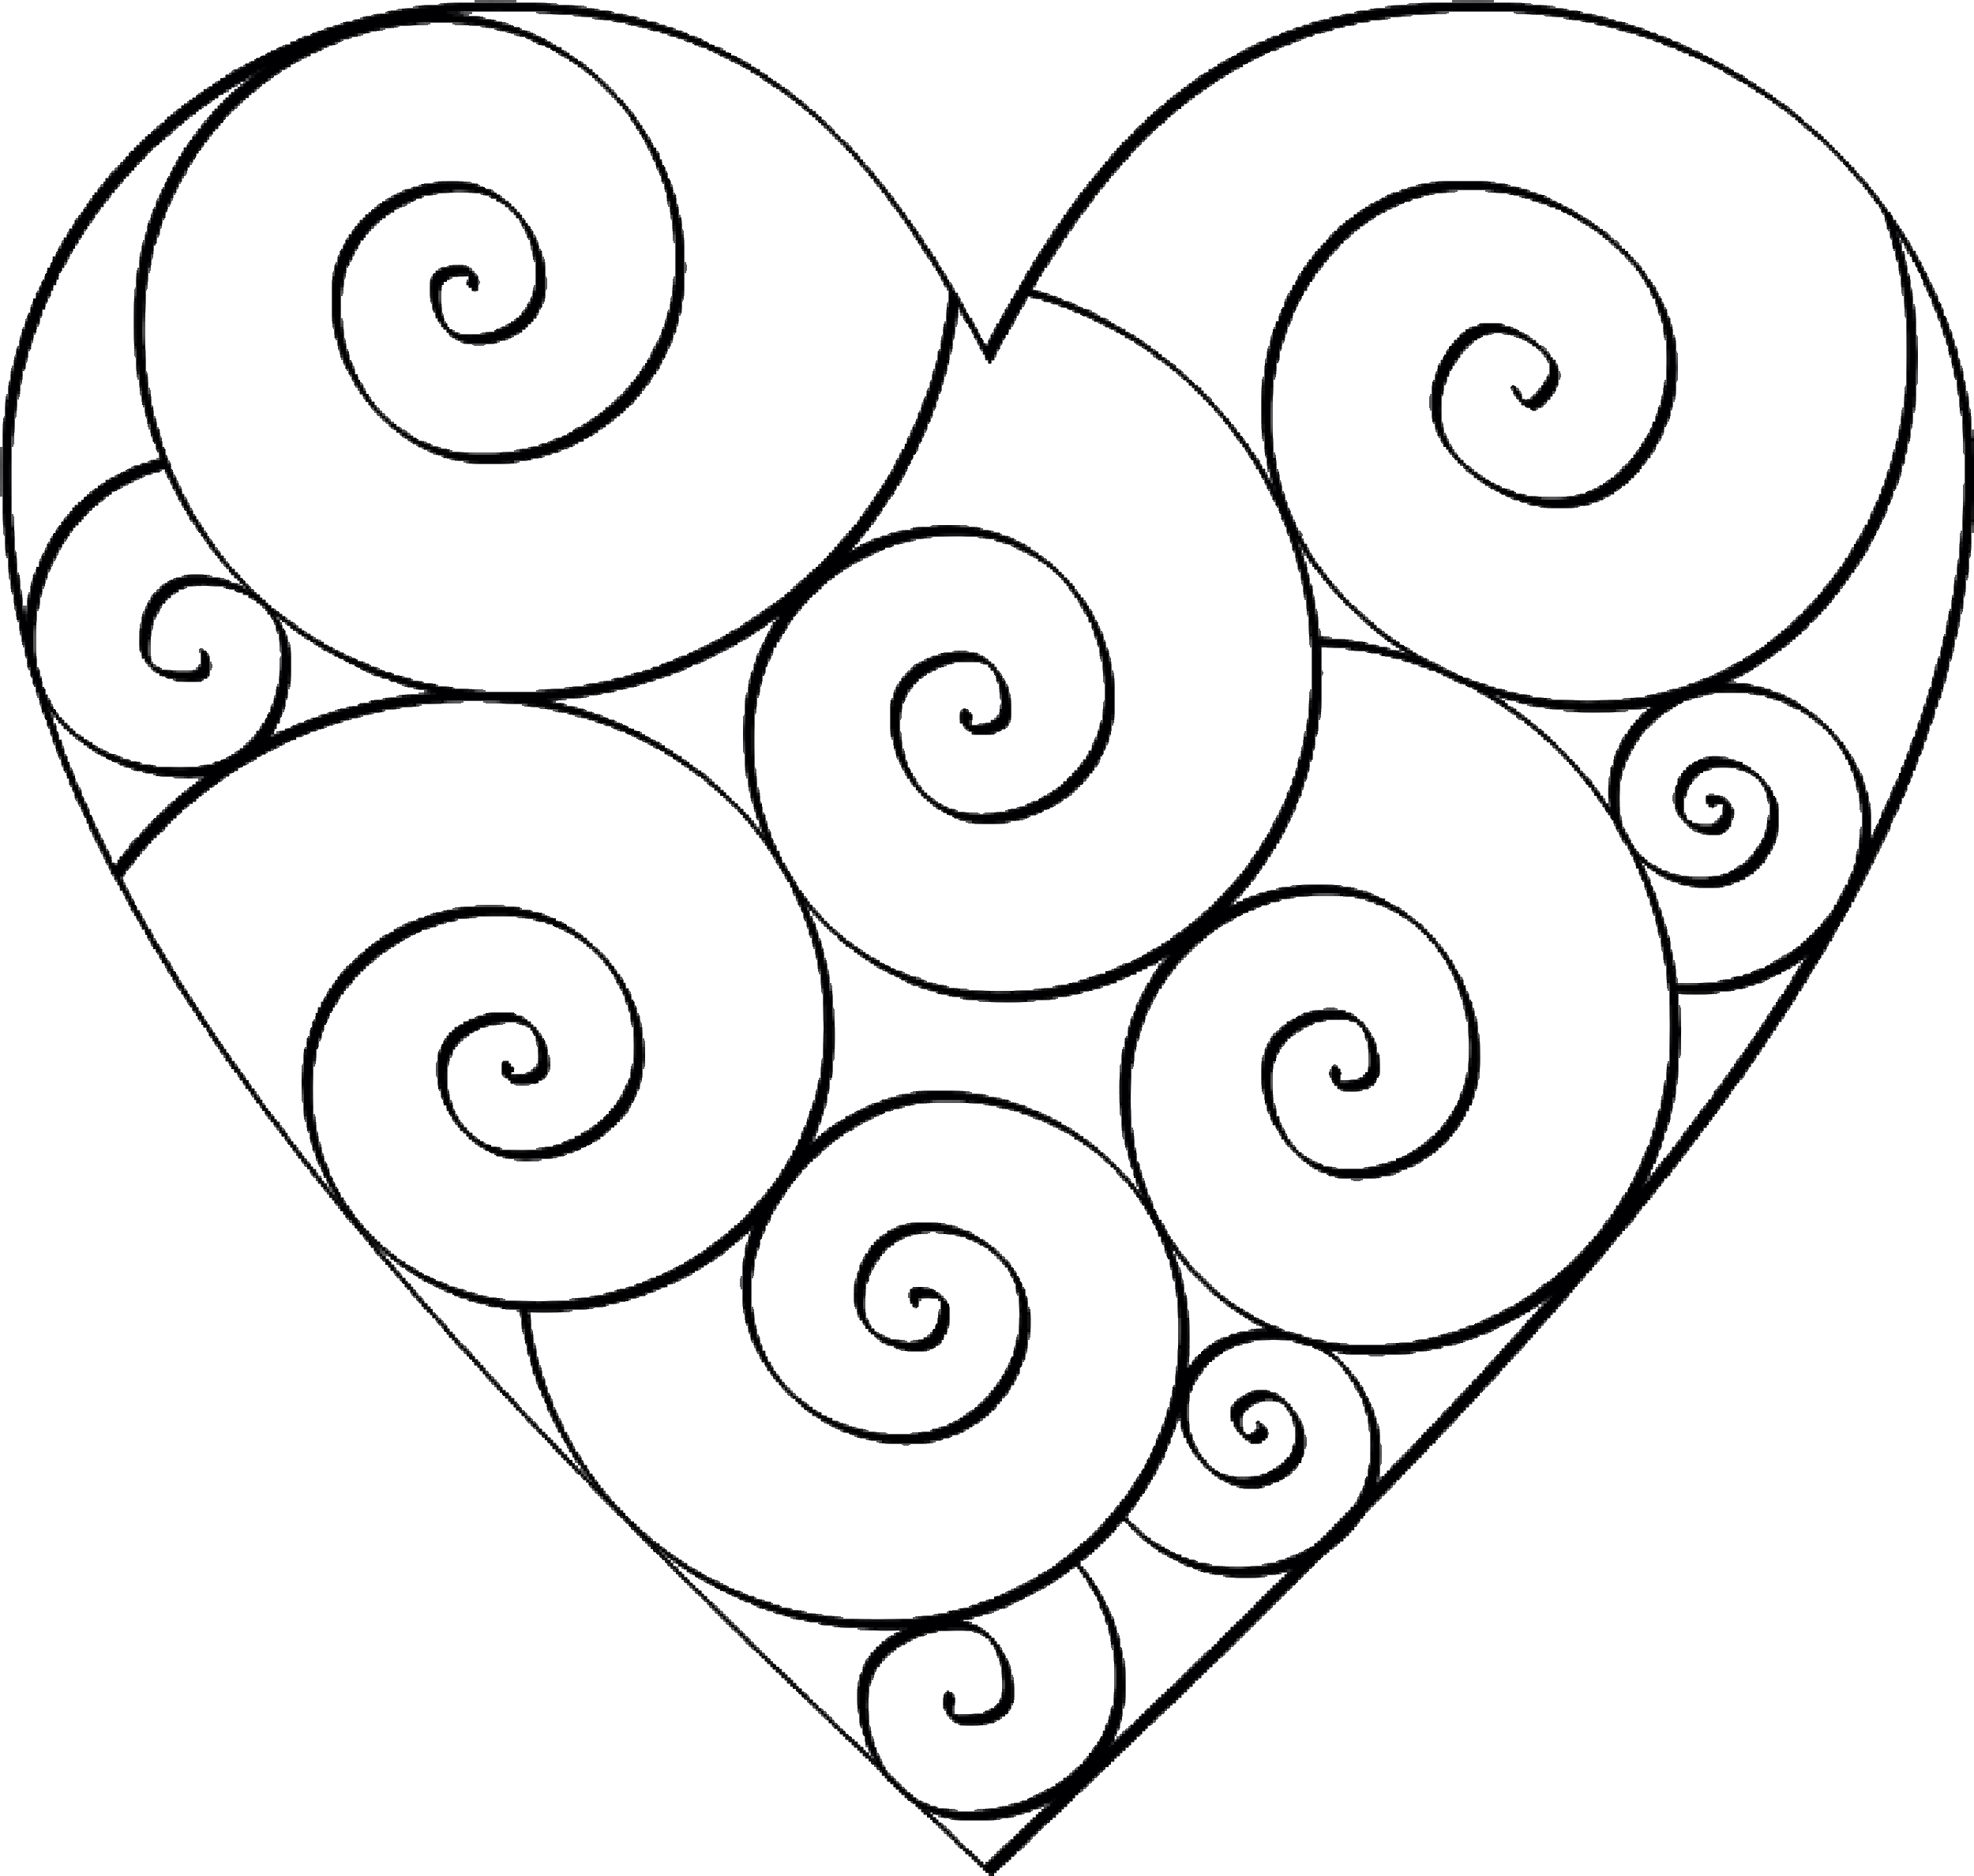 free printable heart coloring pages for kids free printable heart coloring pages for kids coloring pages free printable heart for kids